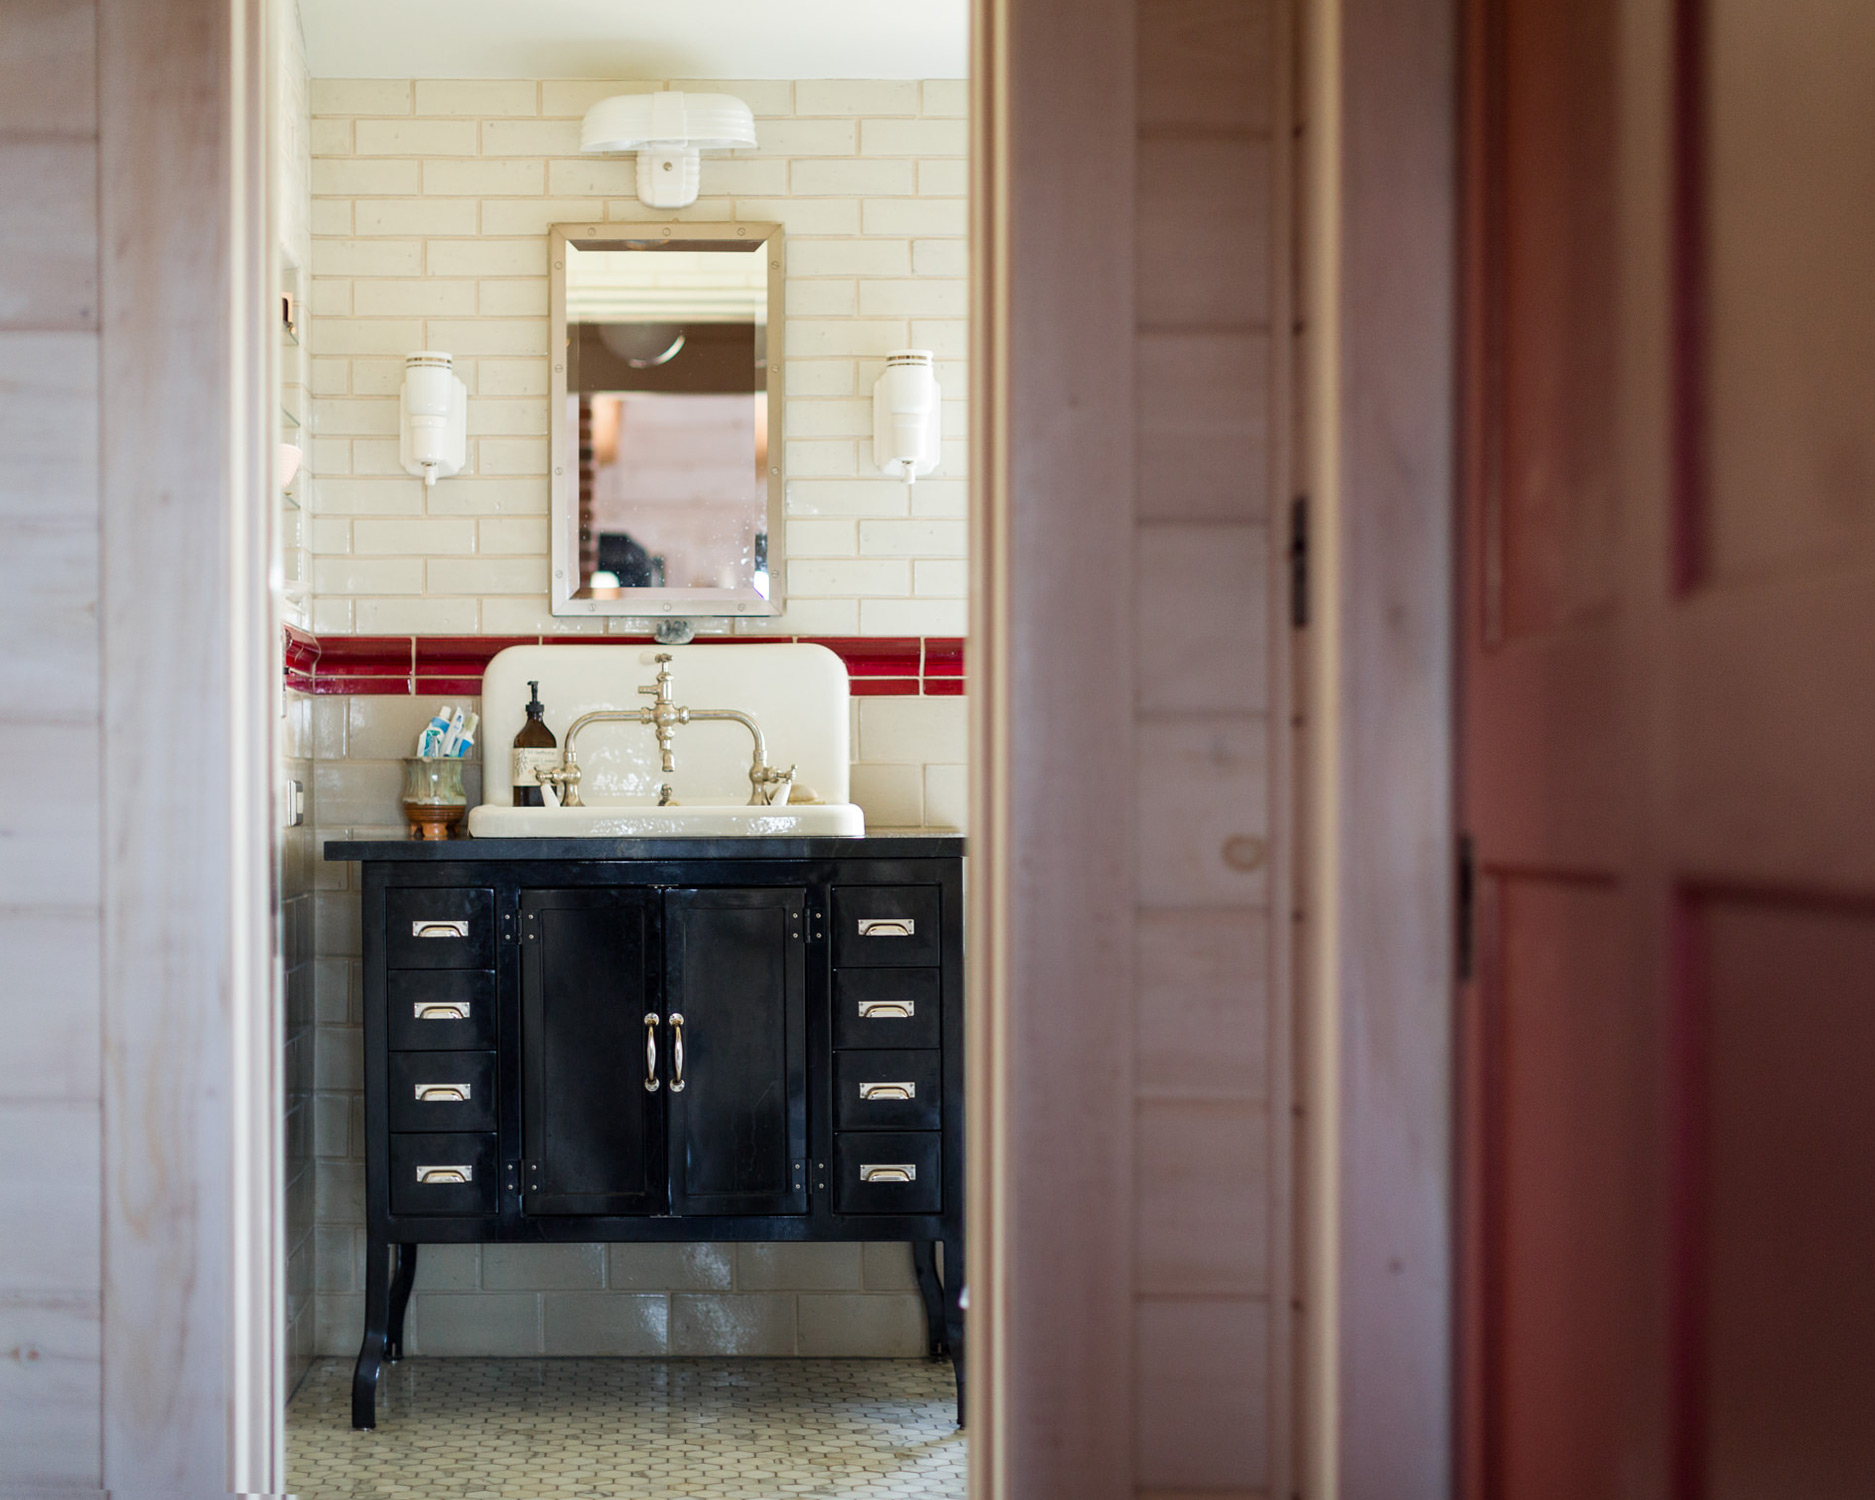 A view through the doorway into a farmhouse bathroom with a vanity mounted sink taken by architecture photographer Stina Booth